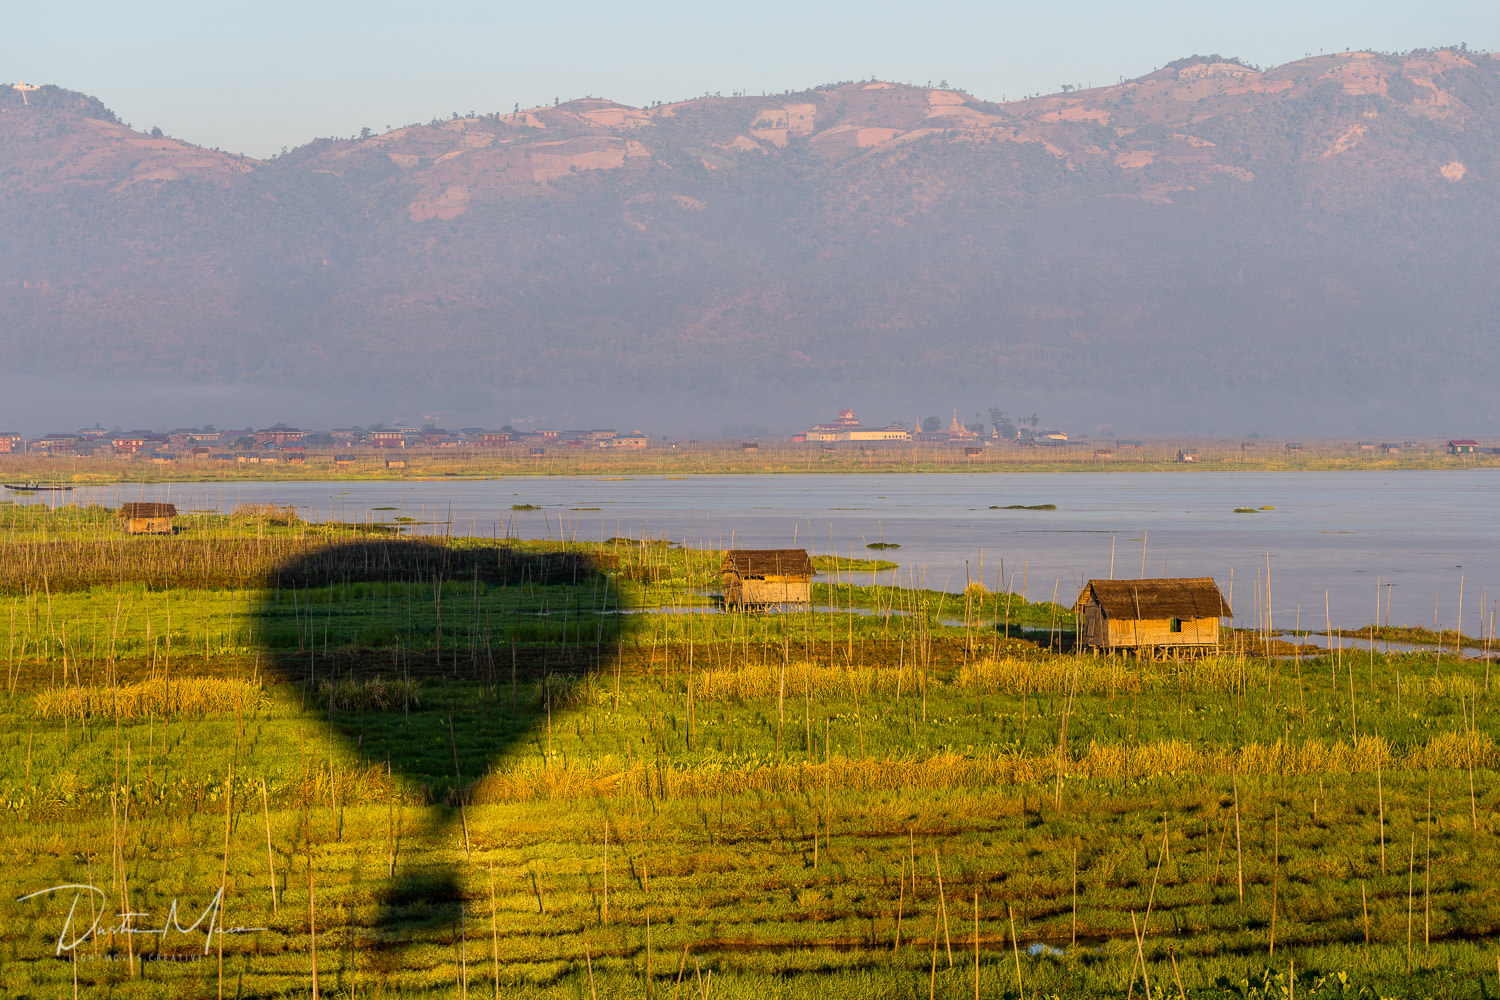 Shadow of the balloon captured on the floating gardens of Inle Lake.  © Dustin Main 2017